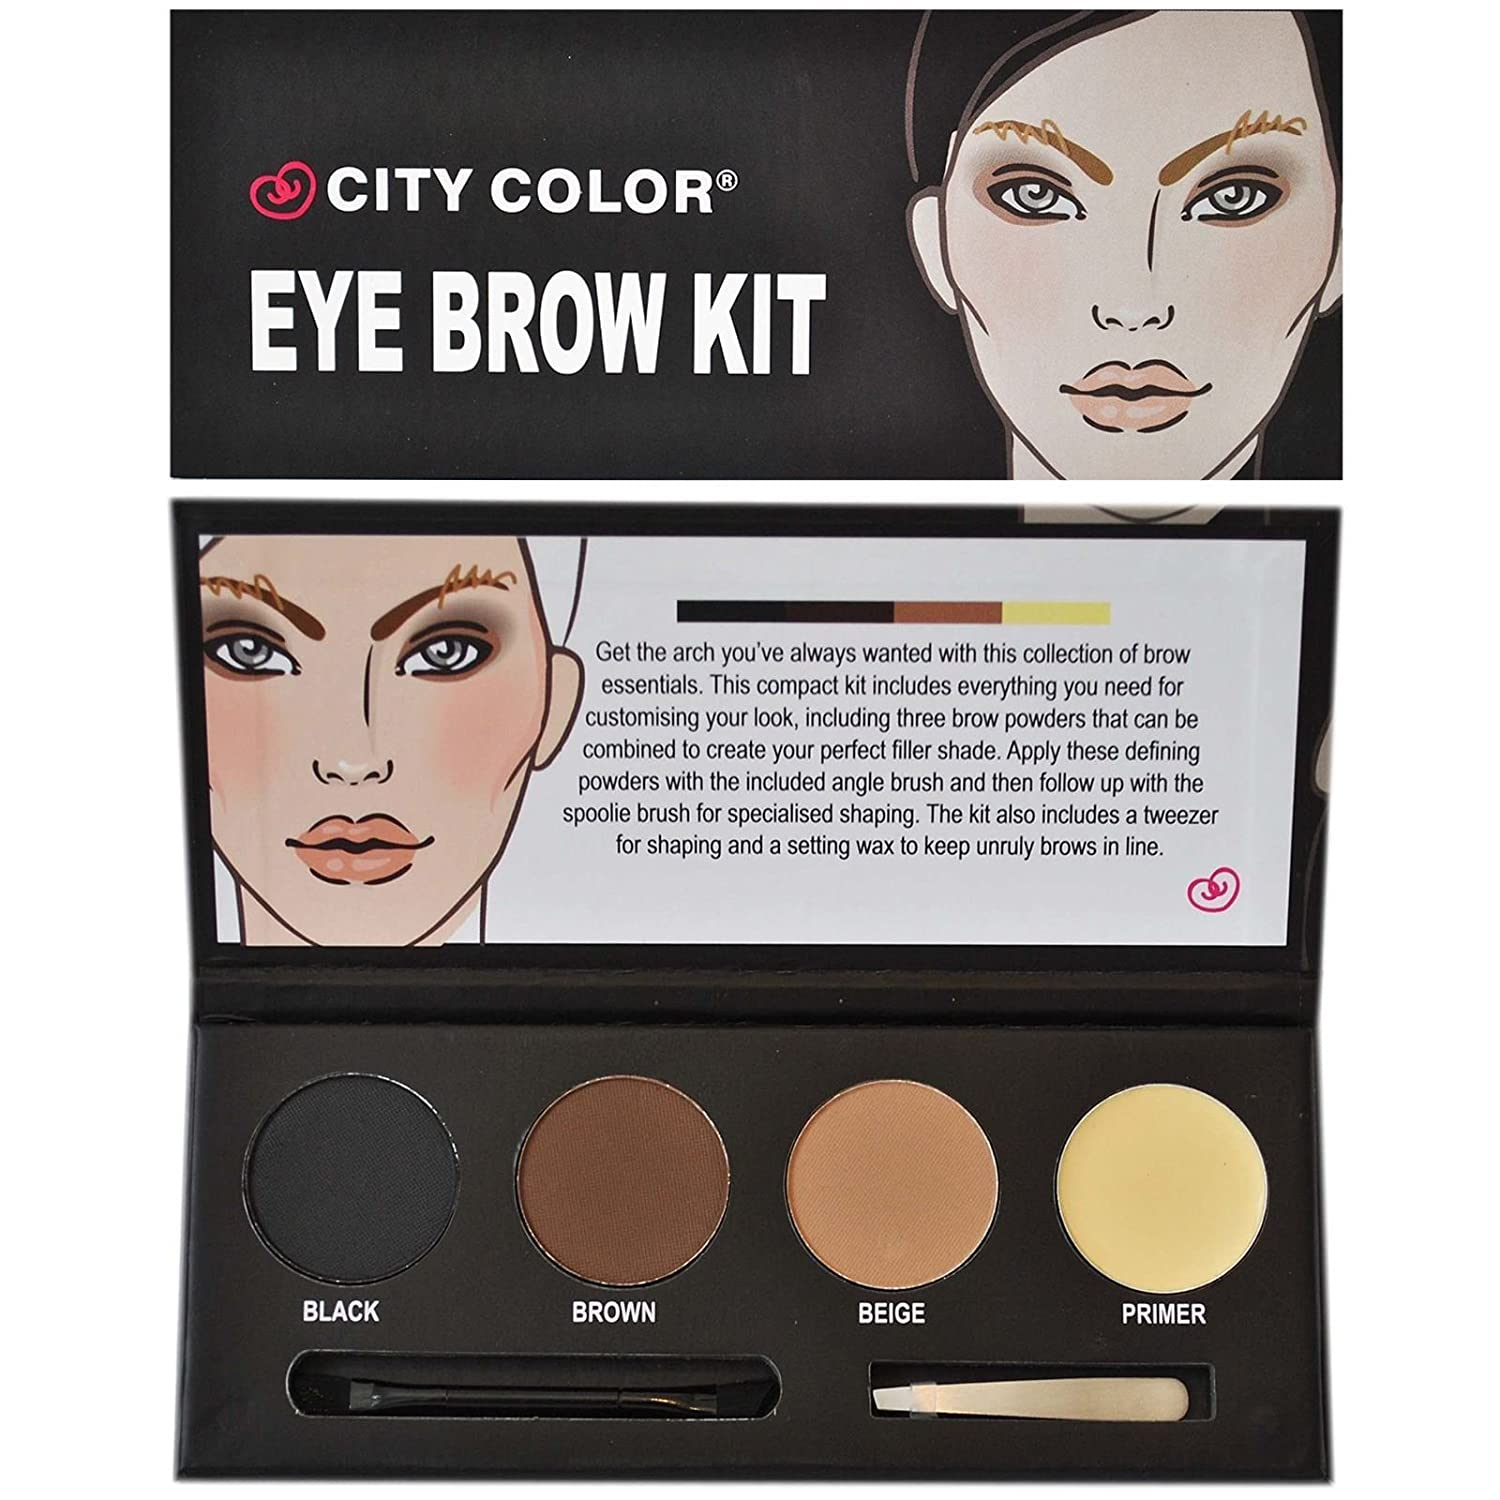 City Color Eye Brow Eyebrow Powder Kit Wax Primer Tweezers Shaper Brush Gift Set by HCL na